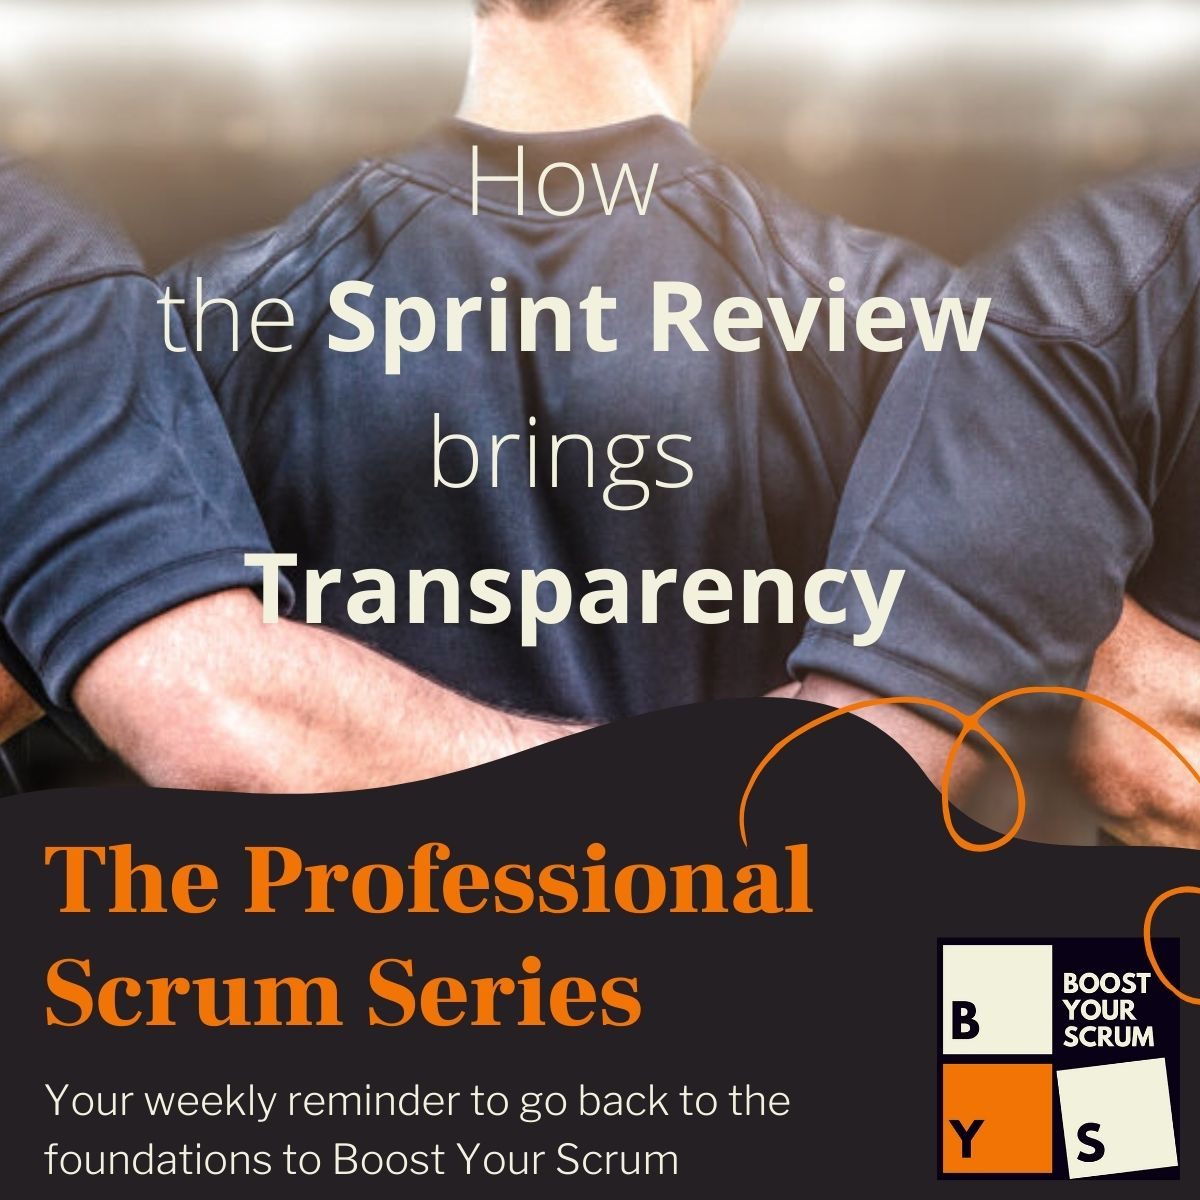 The Sprint Review does bring Transparency